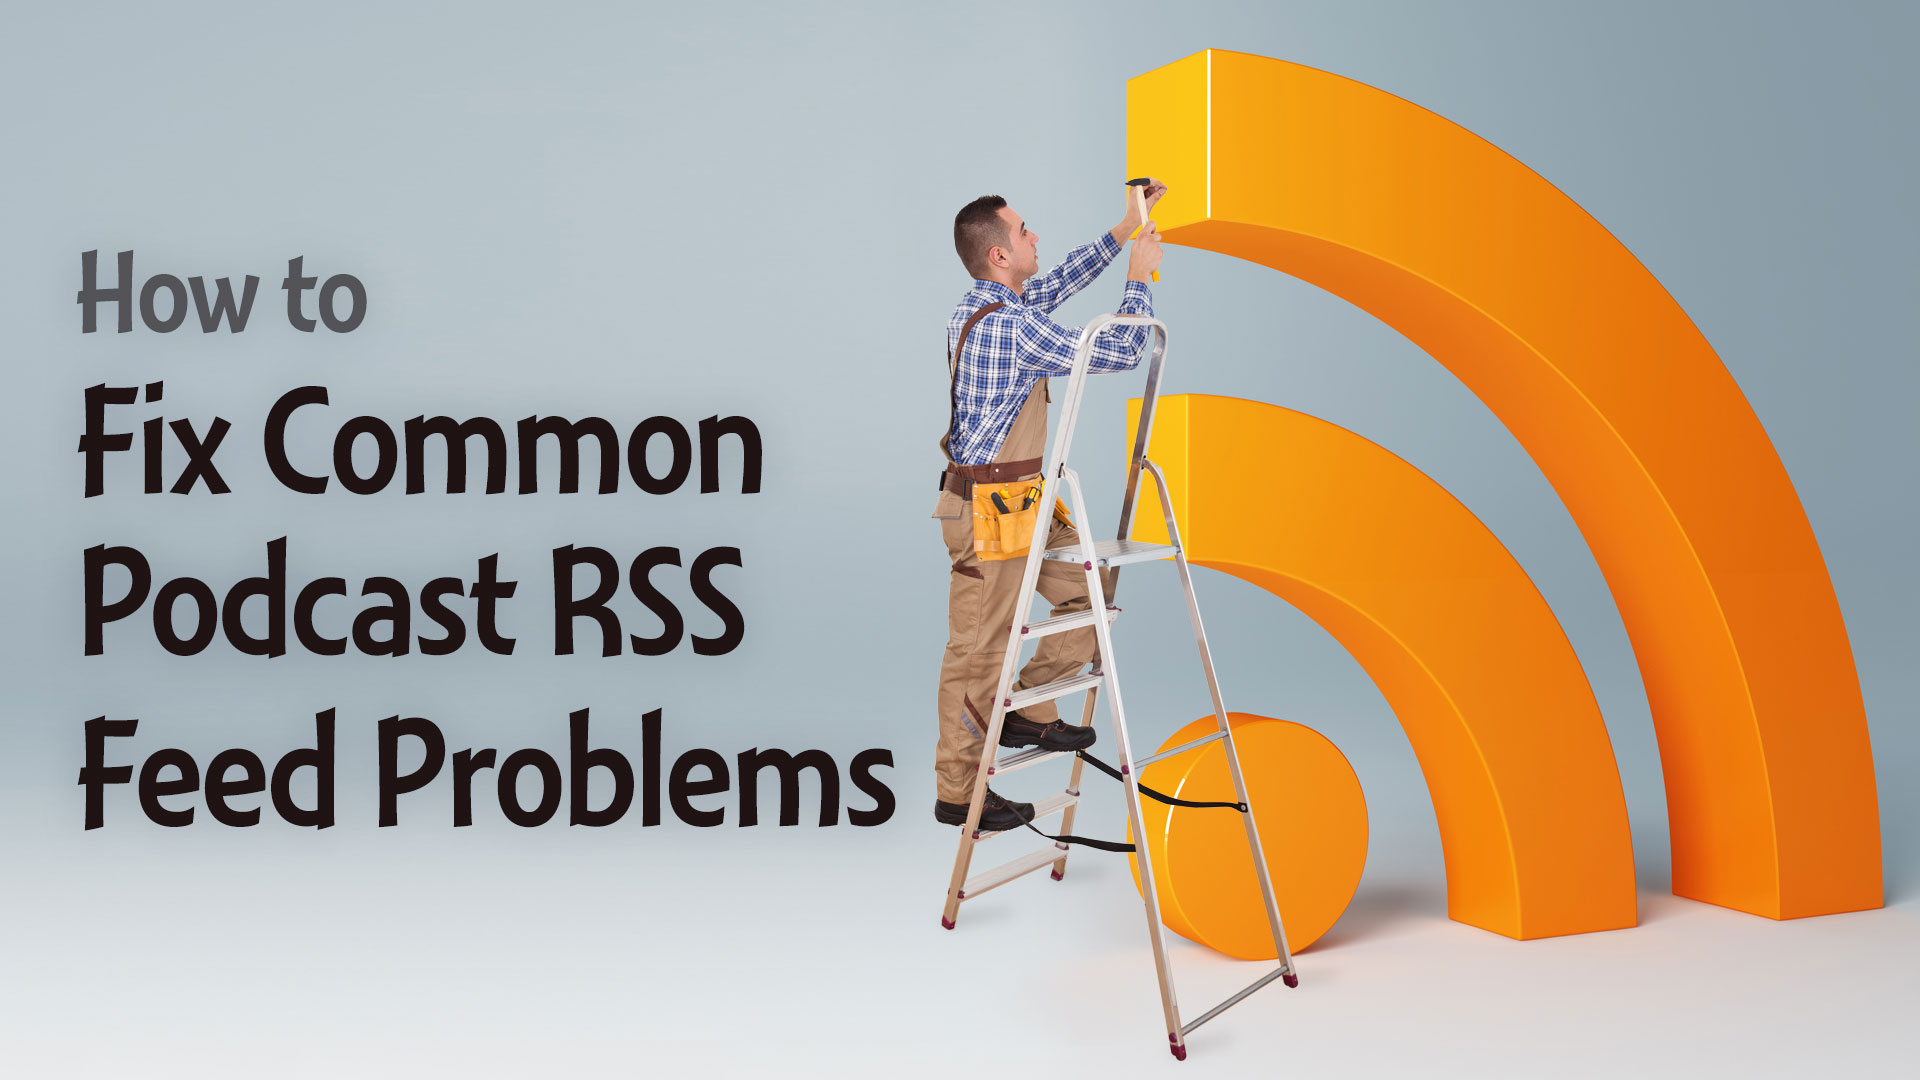 How-to-Fix-Common-Podcast-RSS-Feed-Problems-Wide.jpg